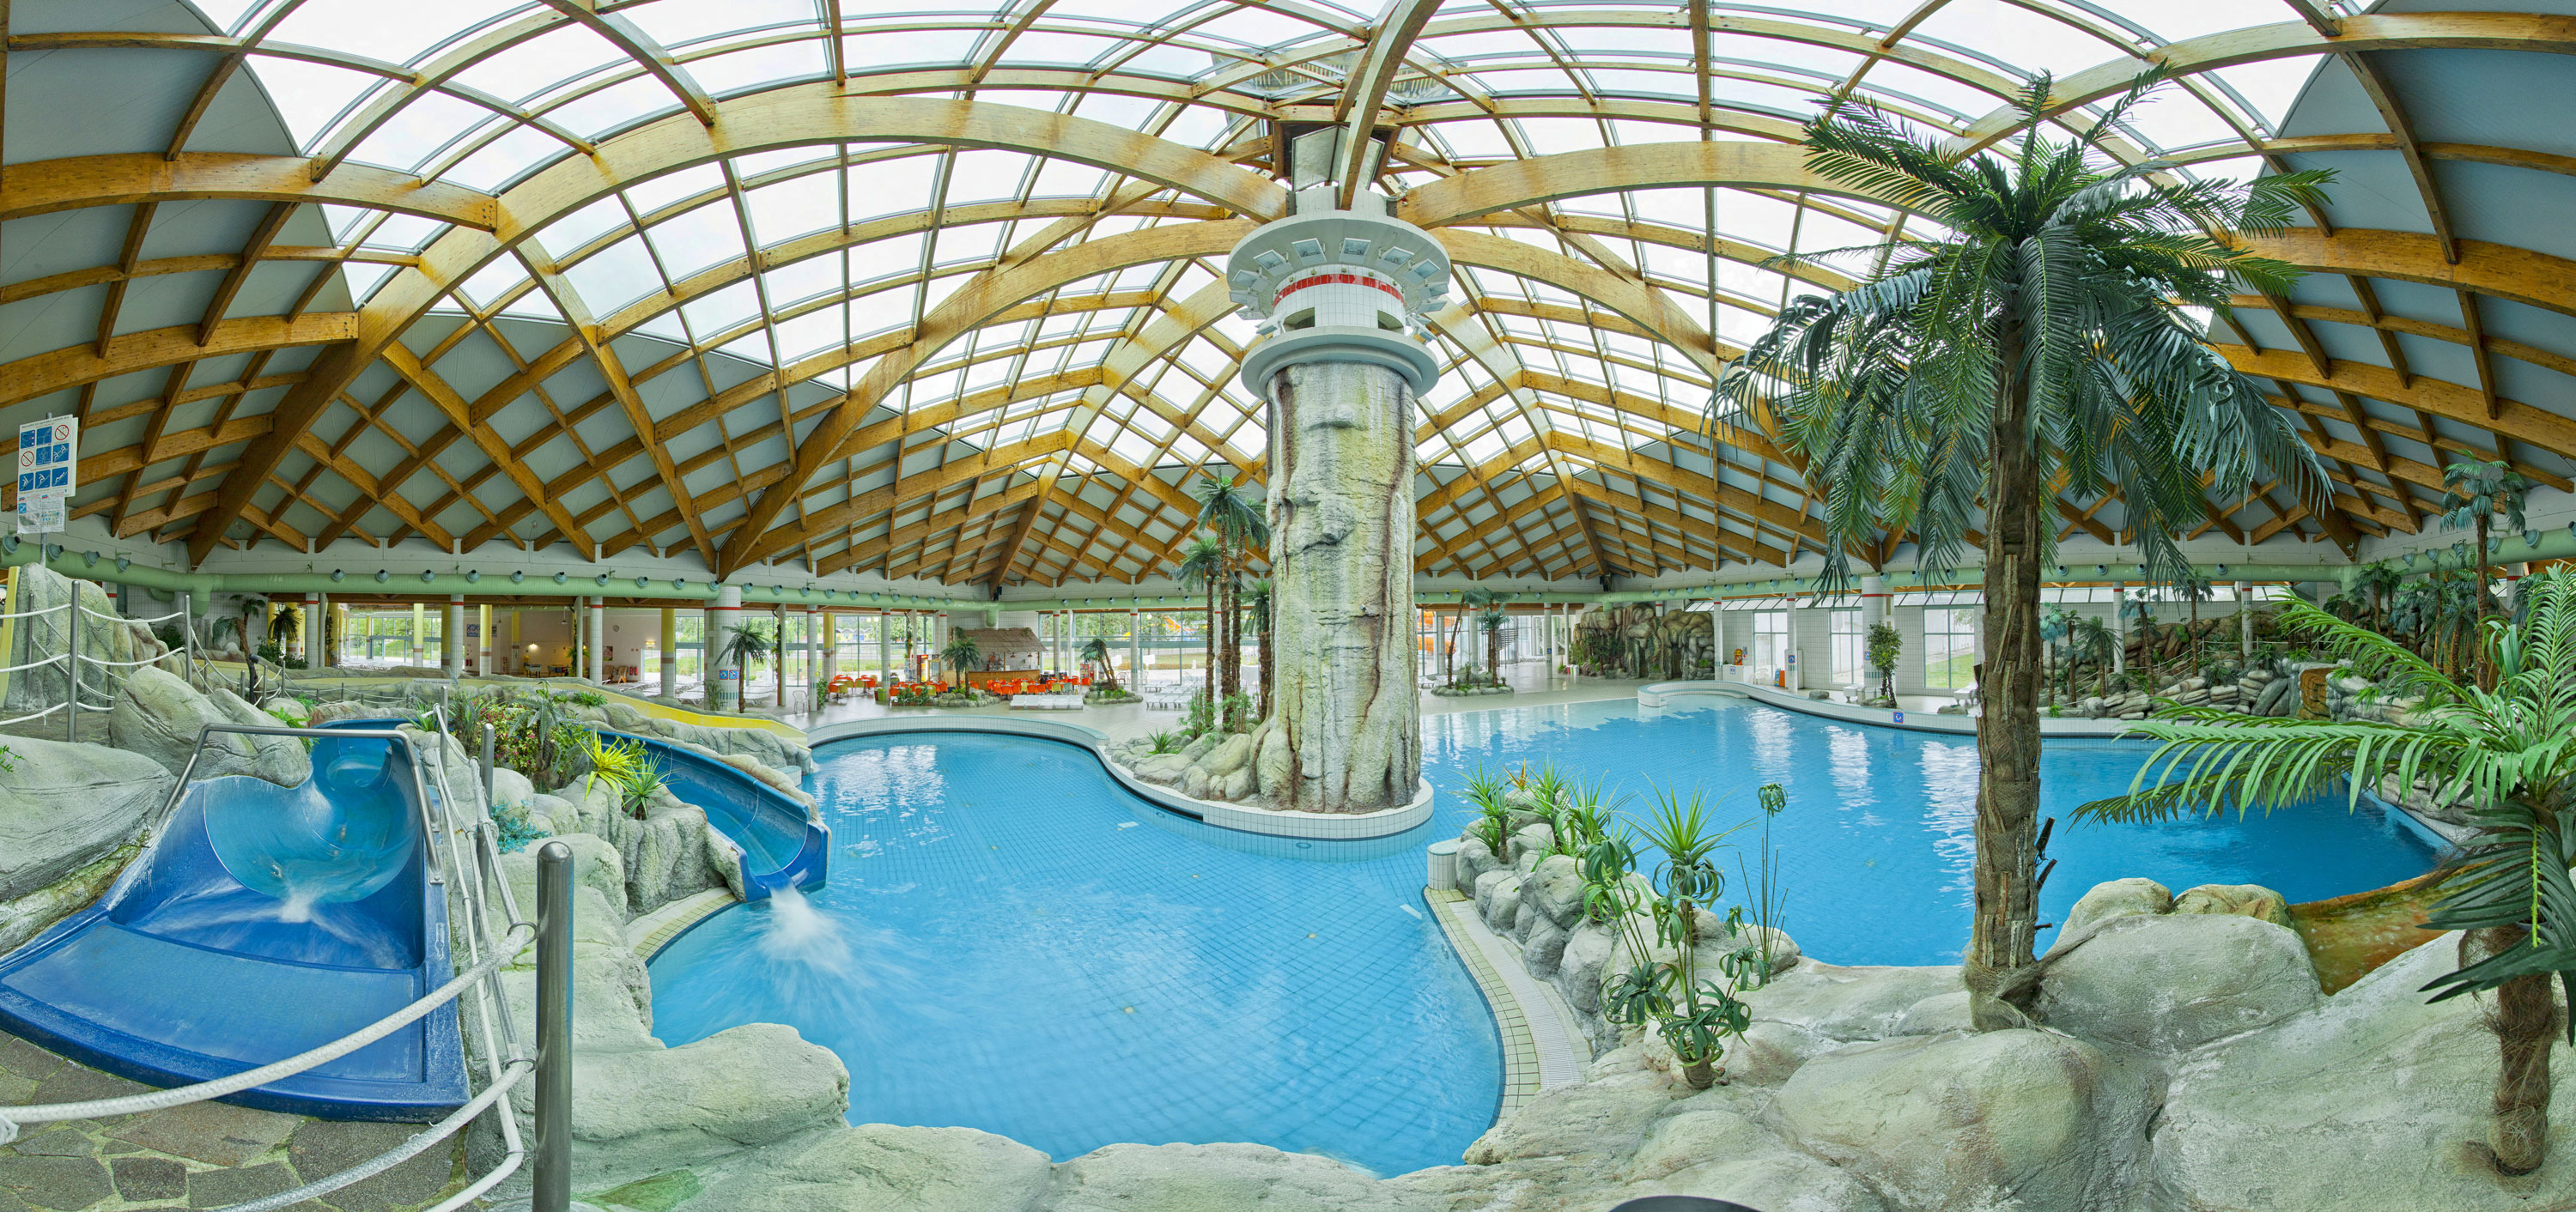 Supertrips - Camping Terme Catez